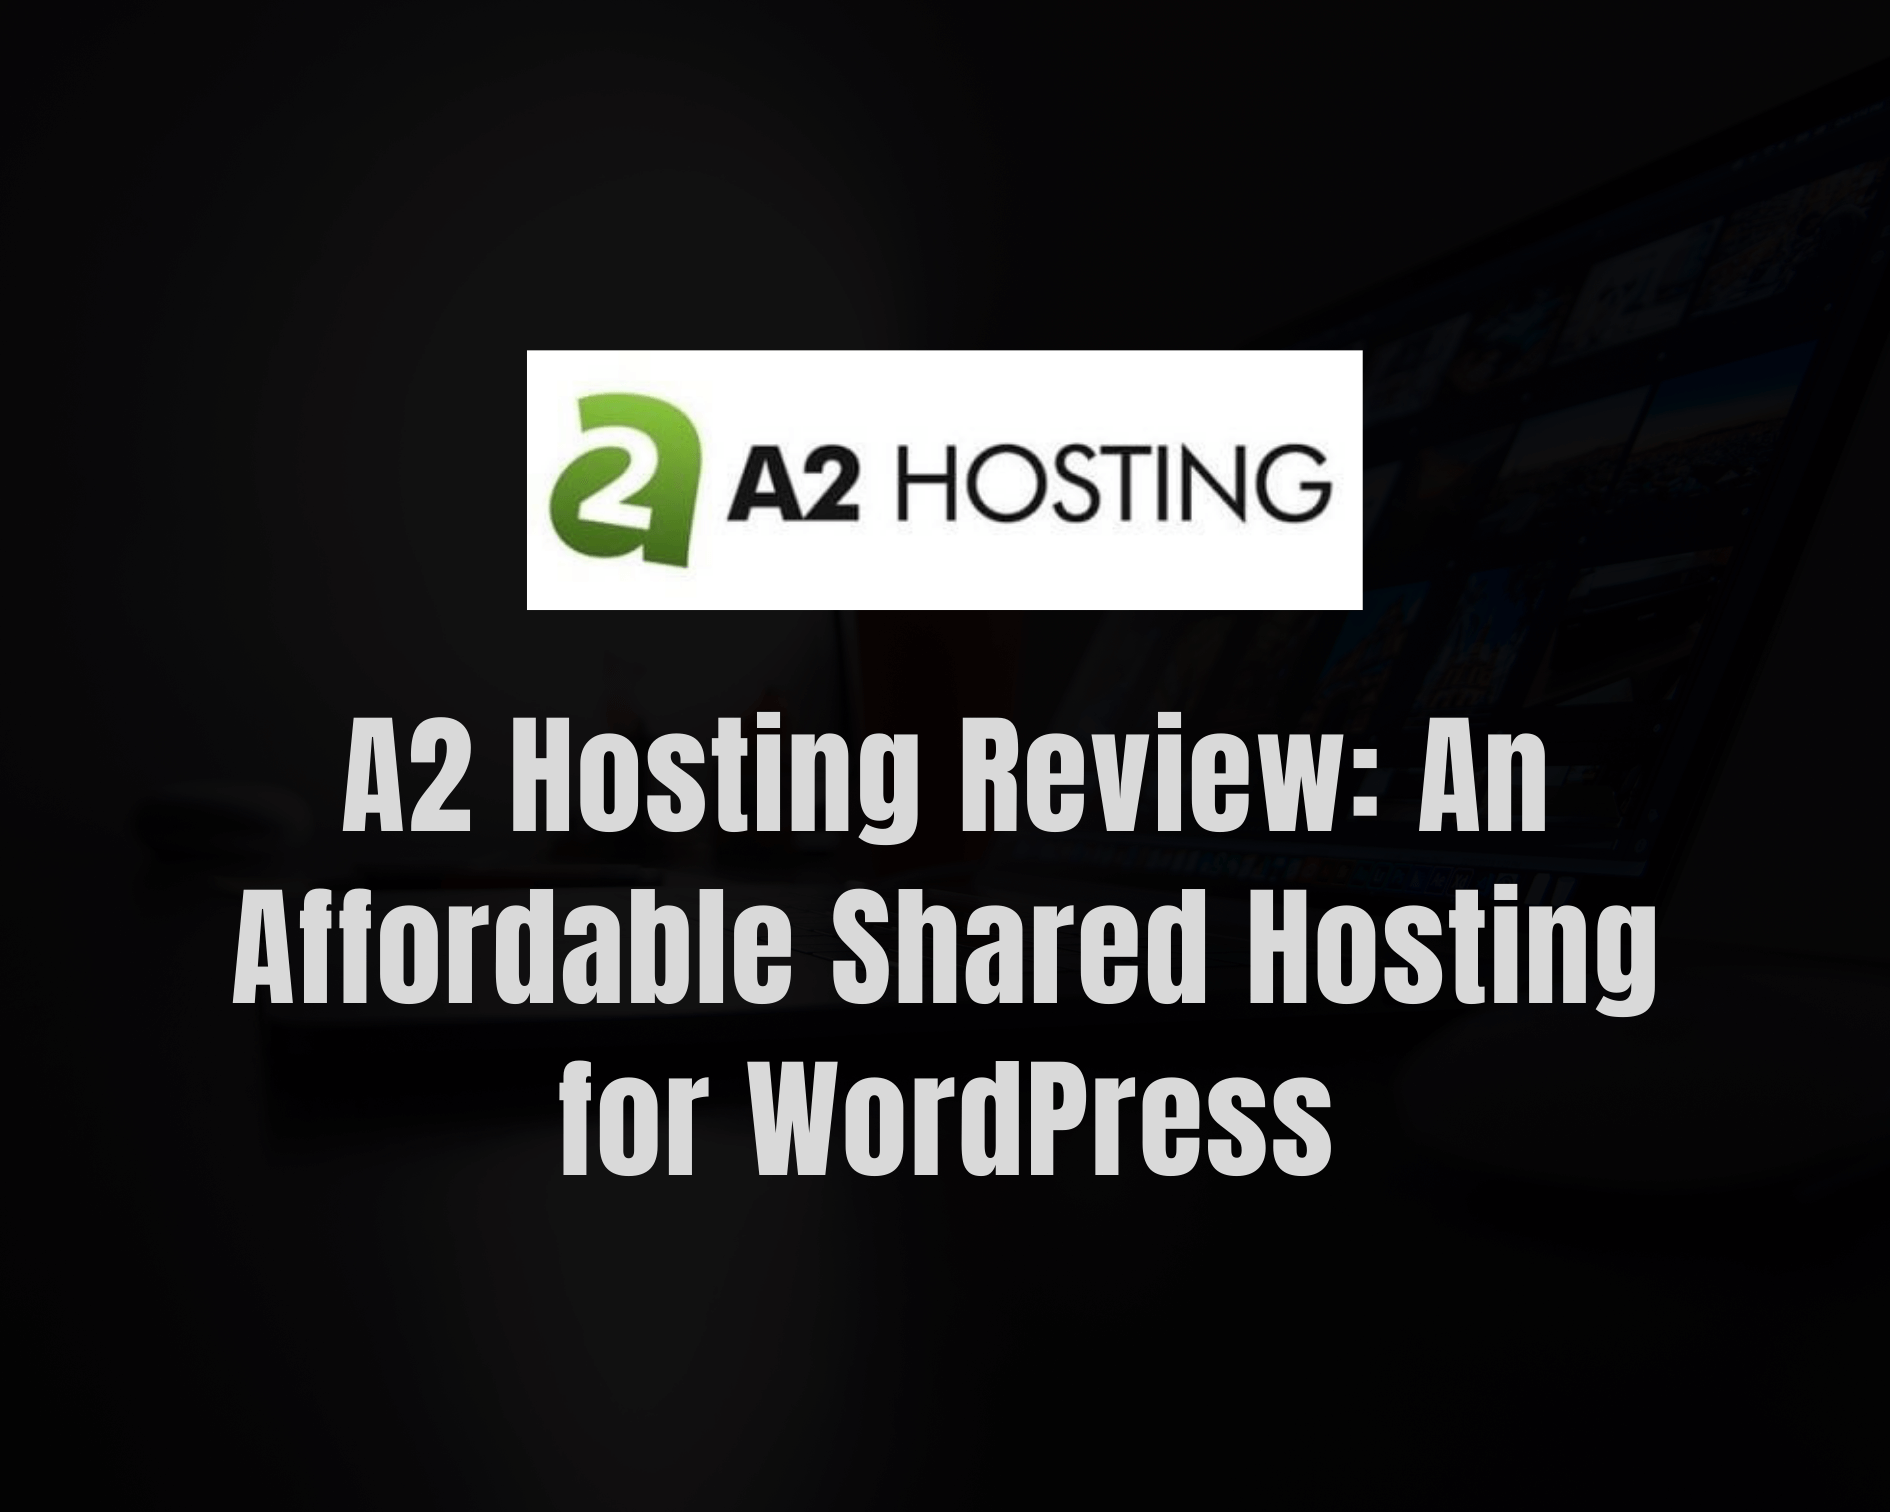 A2 Hosting Review: An Affordable Shared Hosting for WordPress